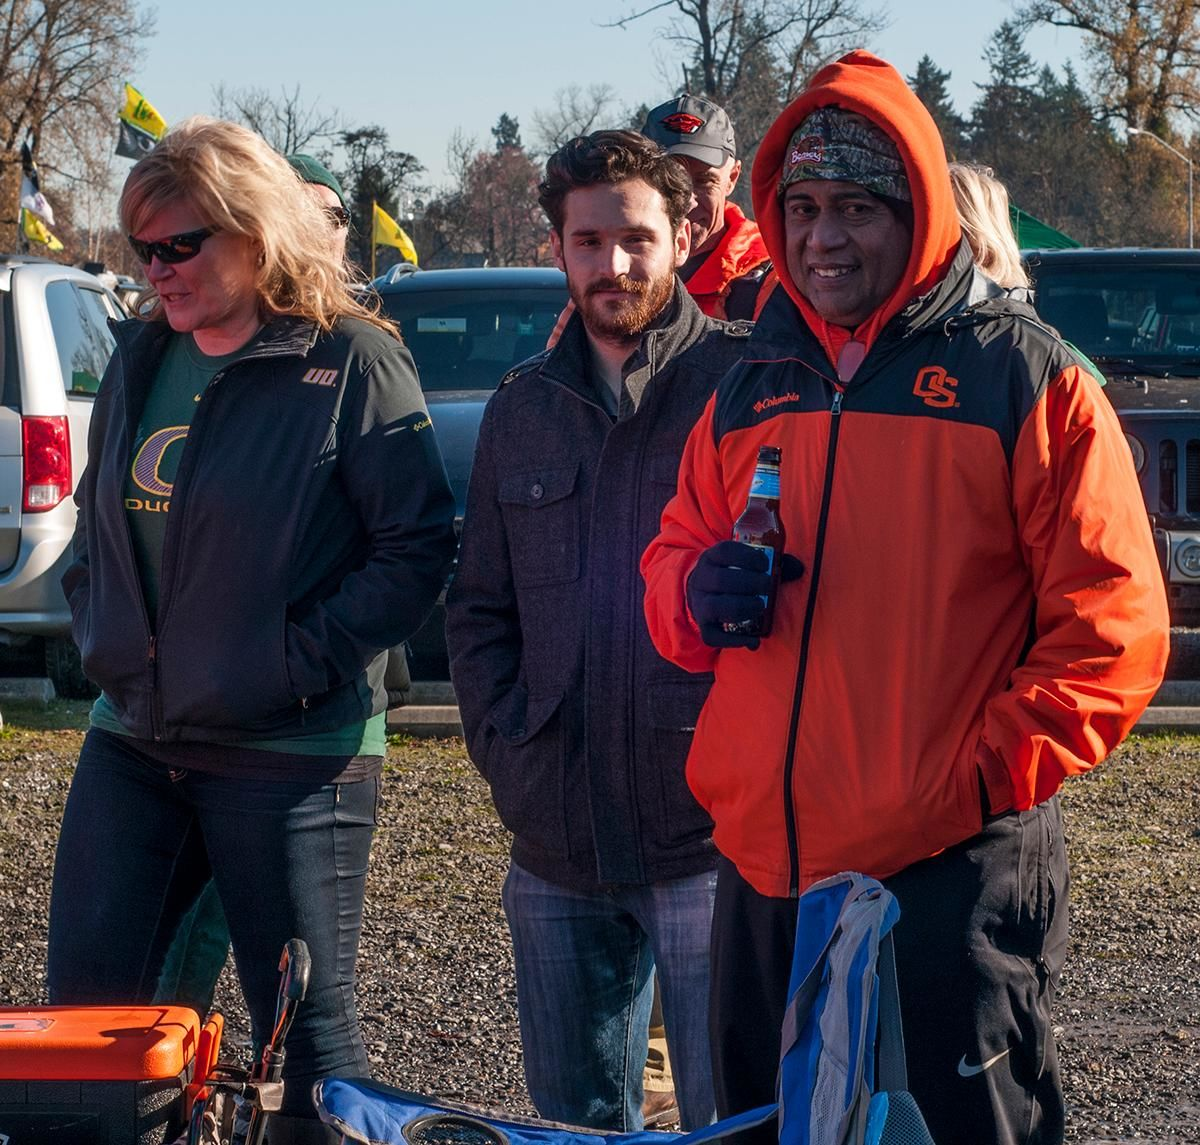 Marcus Dipwek (right), Michael Rivers (center) and Sandy Harris (left) tailgating before the Oregon Ducks vs Oregon State Beavers Civil War game at Autzen Stadium. Photo by Amanda Mathis, Oregon News Lab